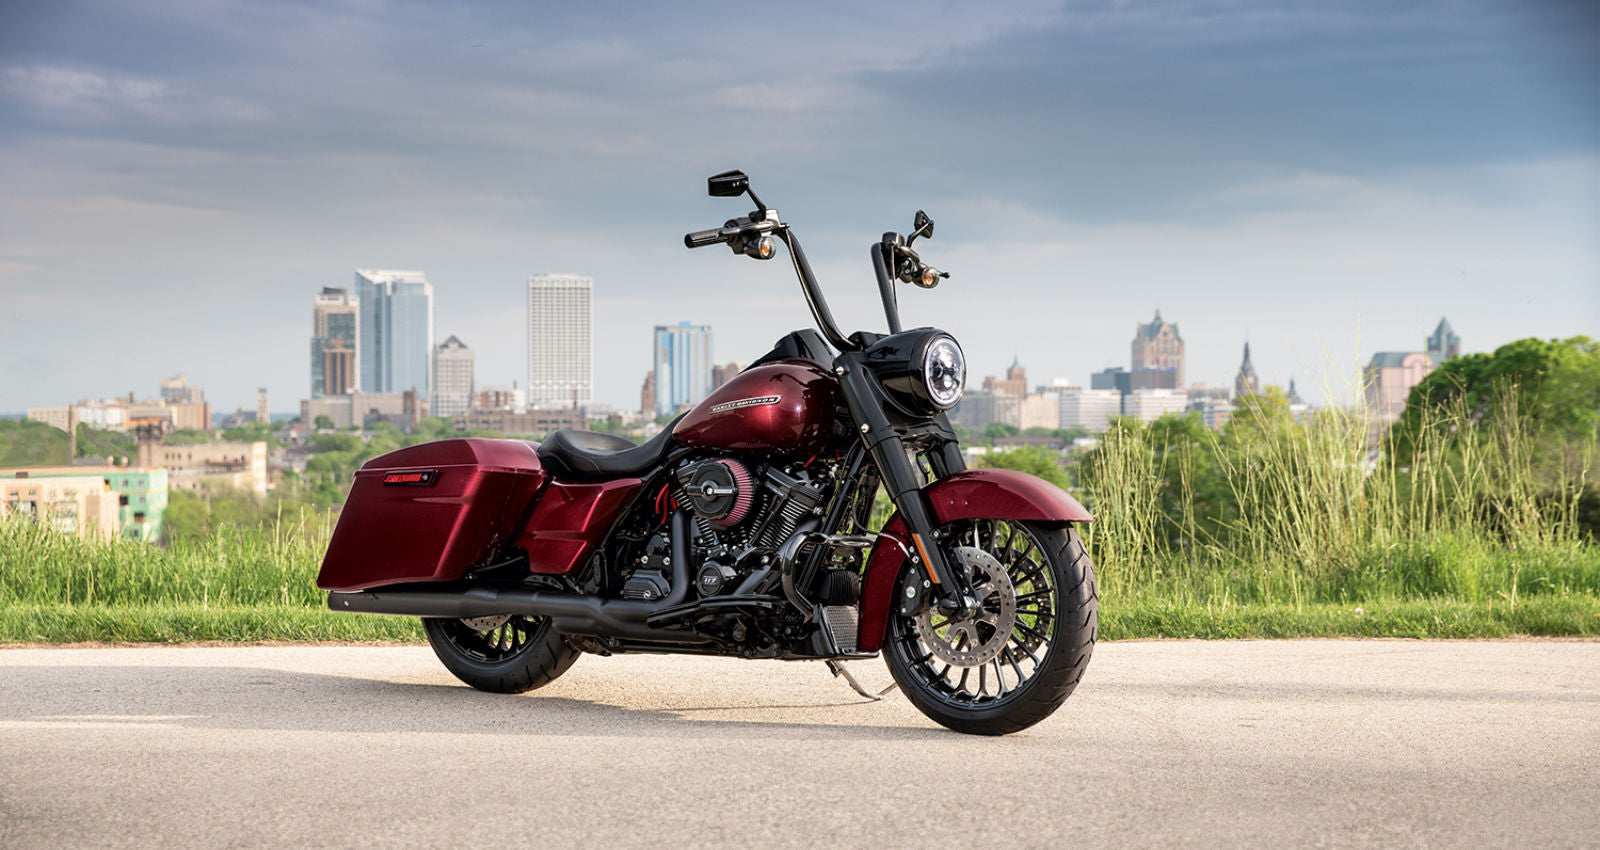 2019 new harley-davidson road king custom